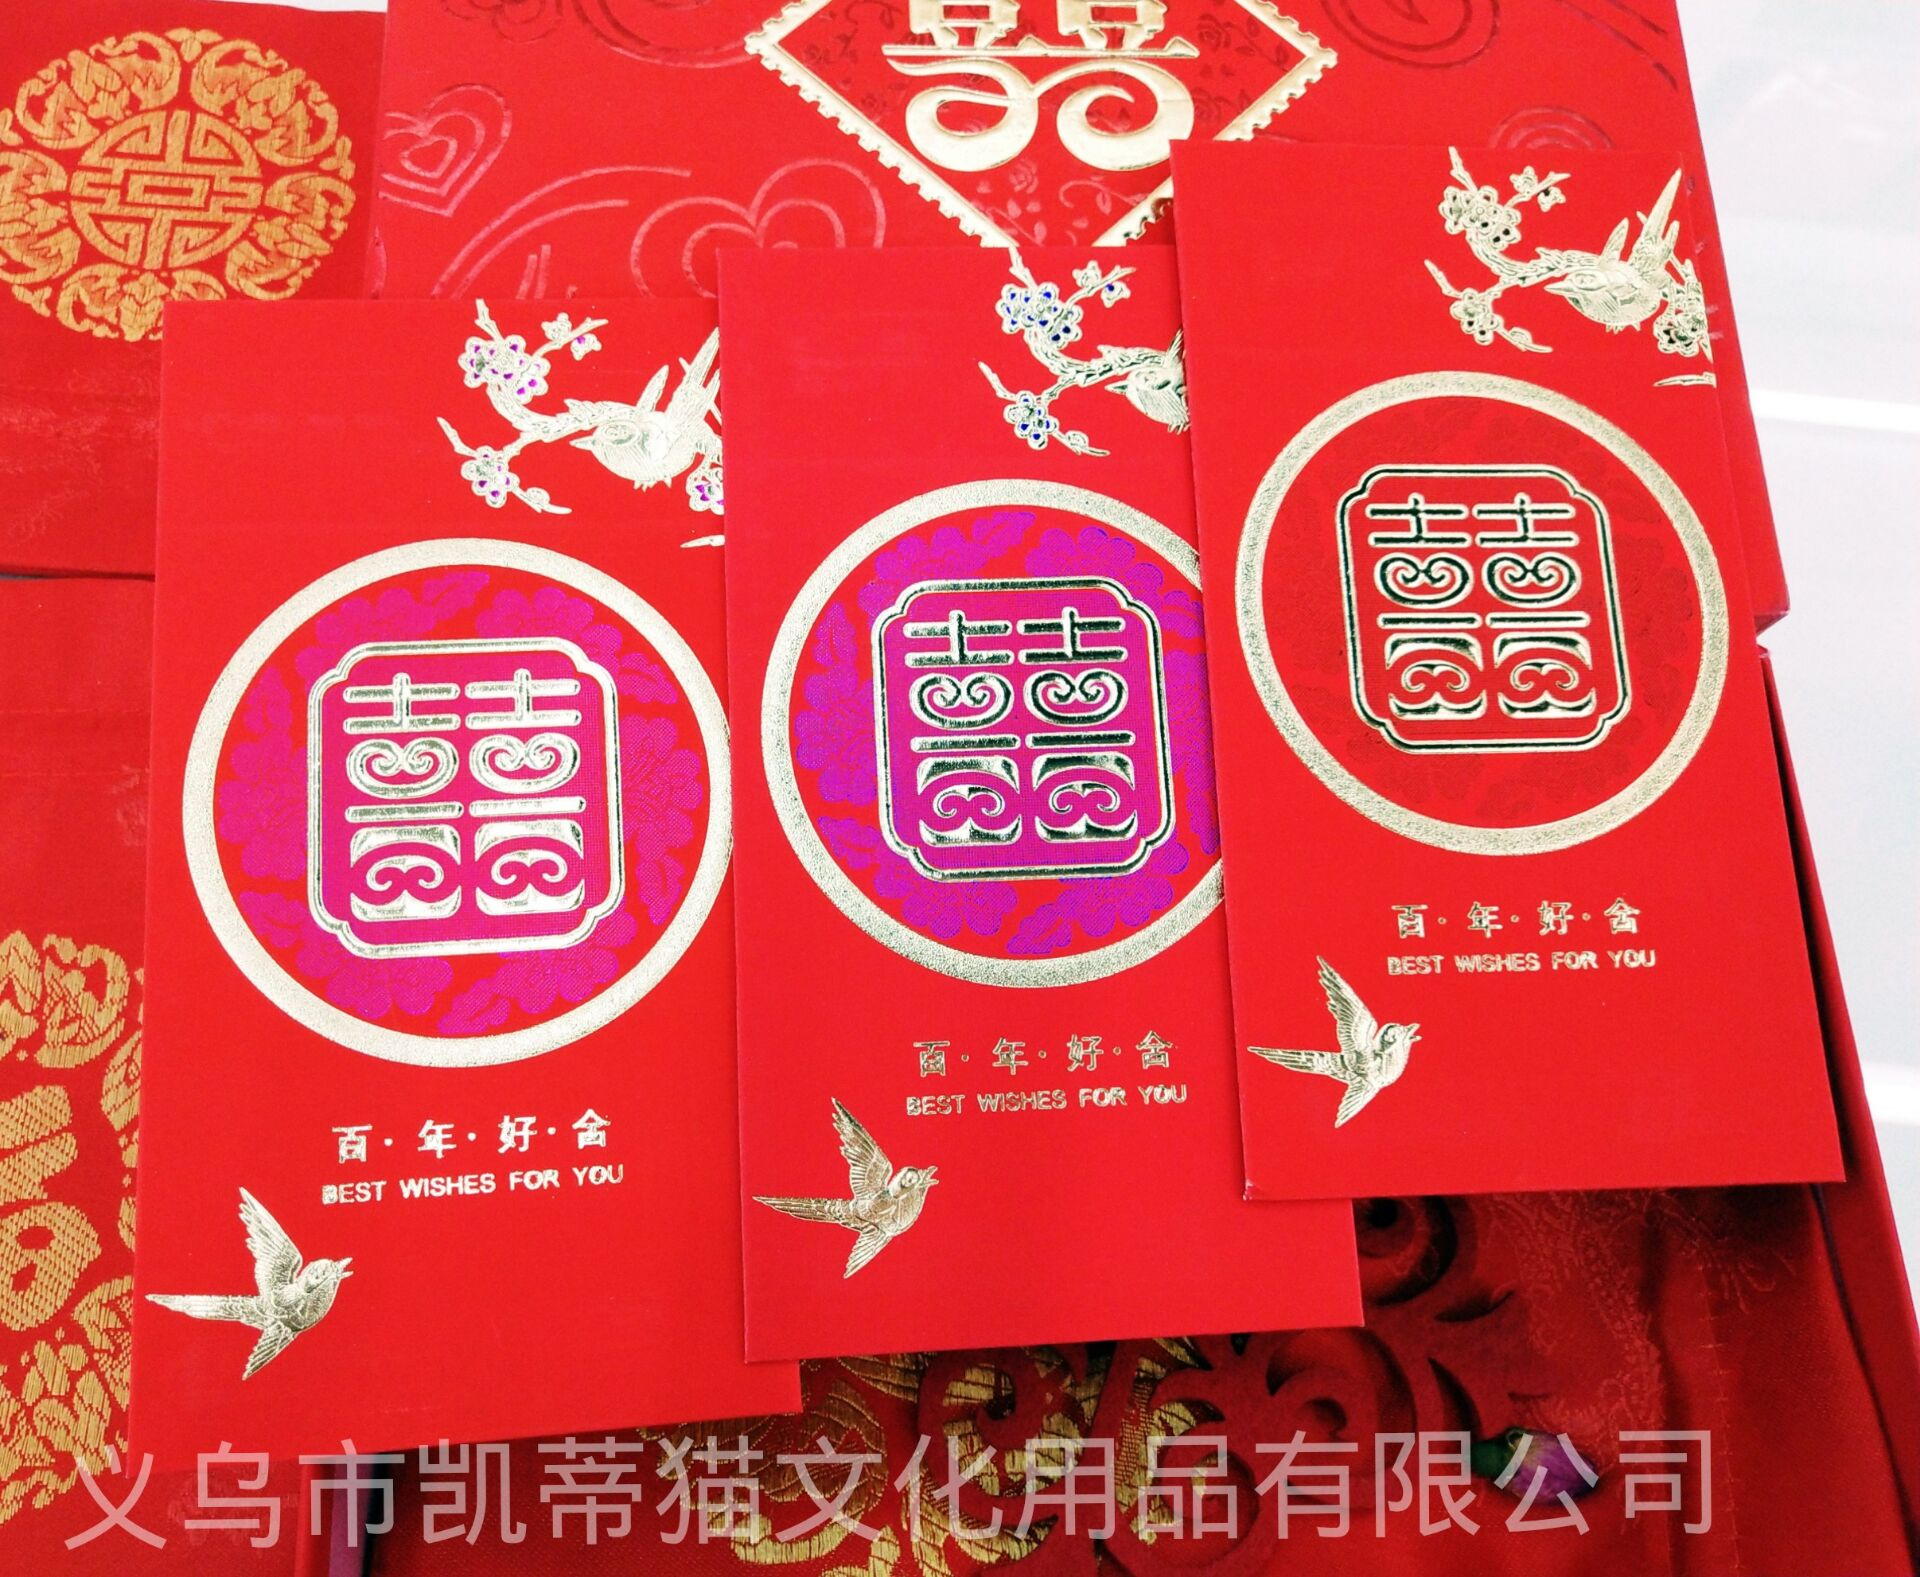 Supply The new wedding red envelope for 18 years is printed with a LOGO-